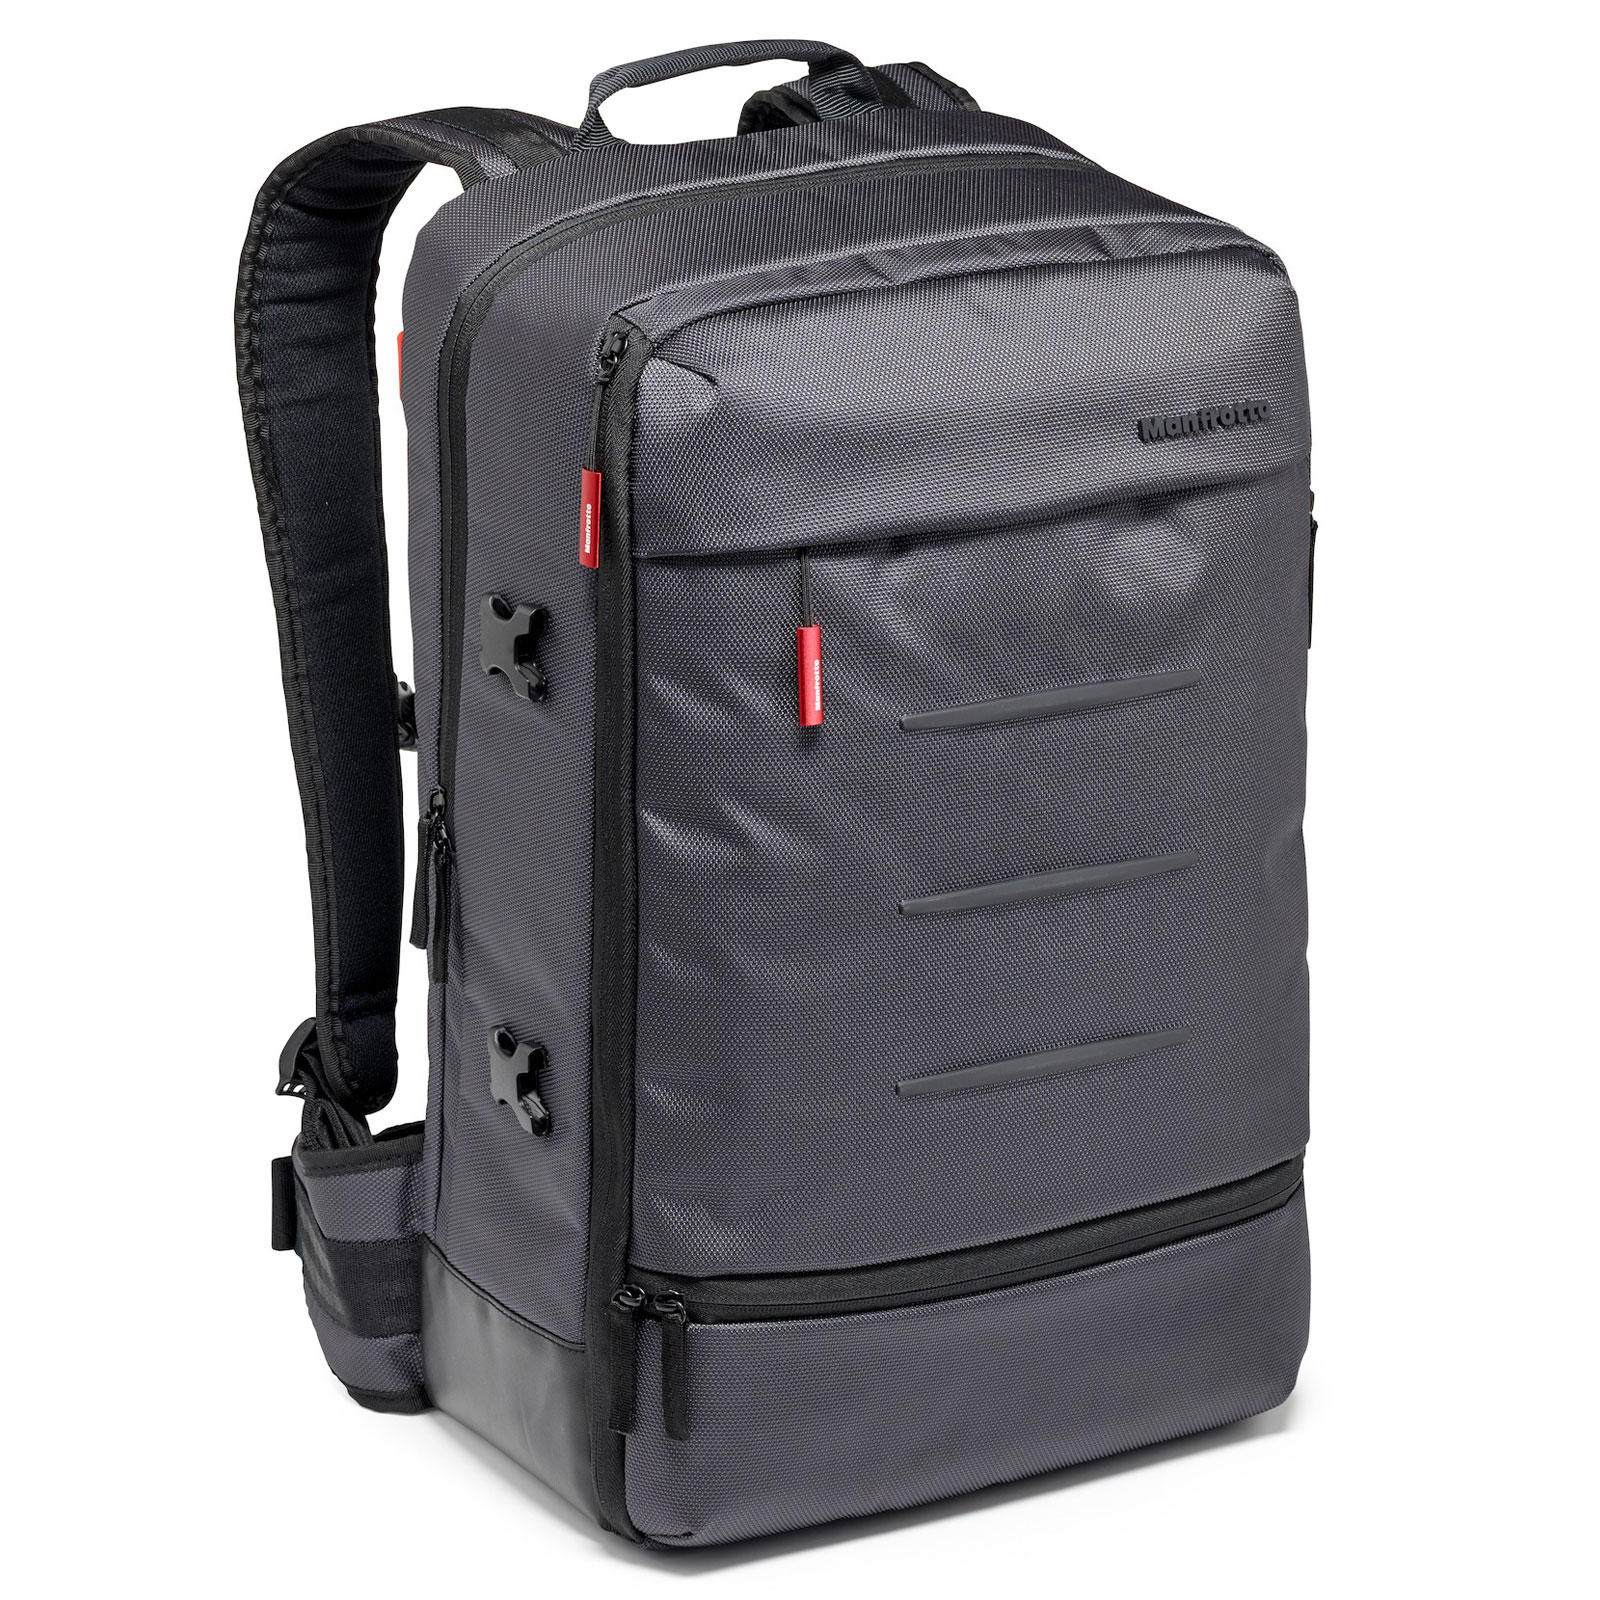 "Sac & étui photo Manfrotto Mover 50 Sac à dos pour appareil photo hybride, reflex tablette 9.7"" et ordinateur portable 15"""